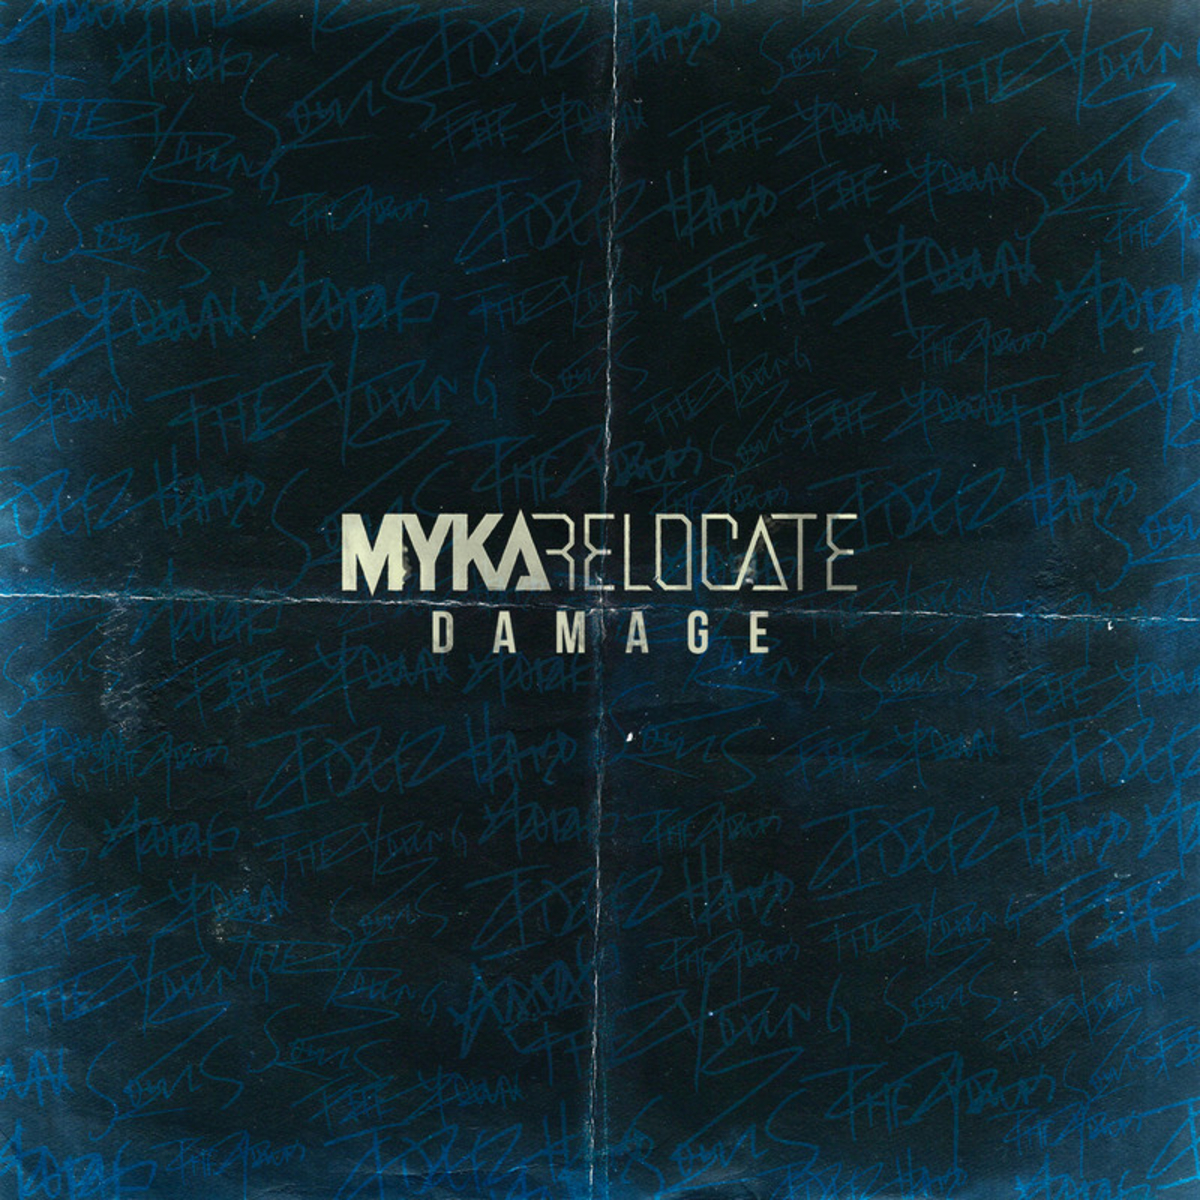 Myka Relocate - Damage [New Song] (2015)